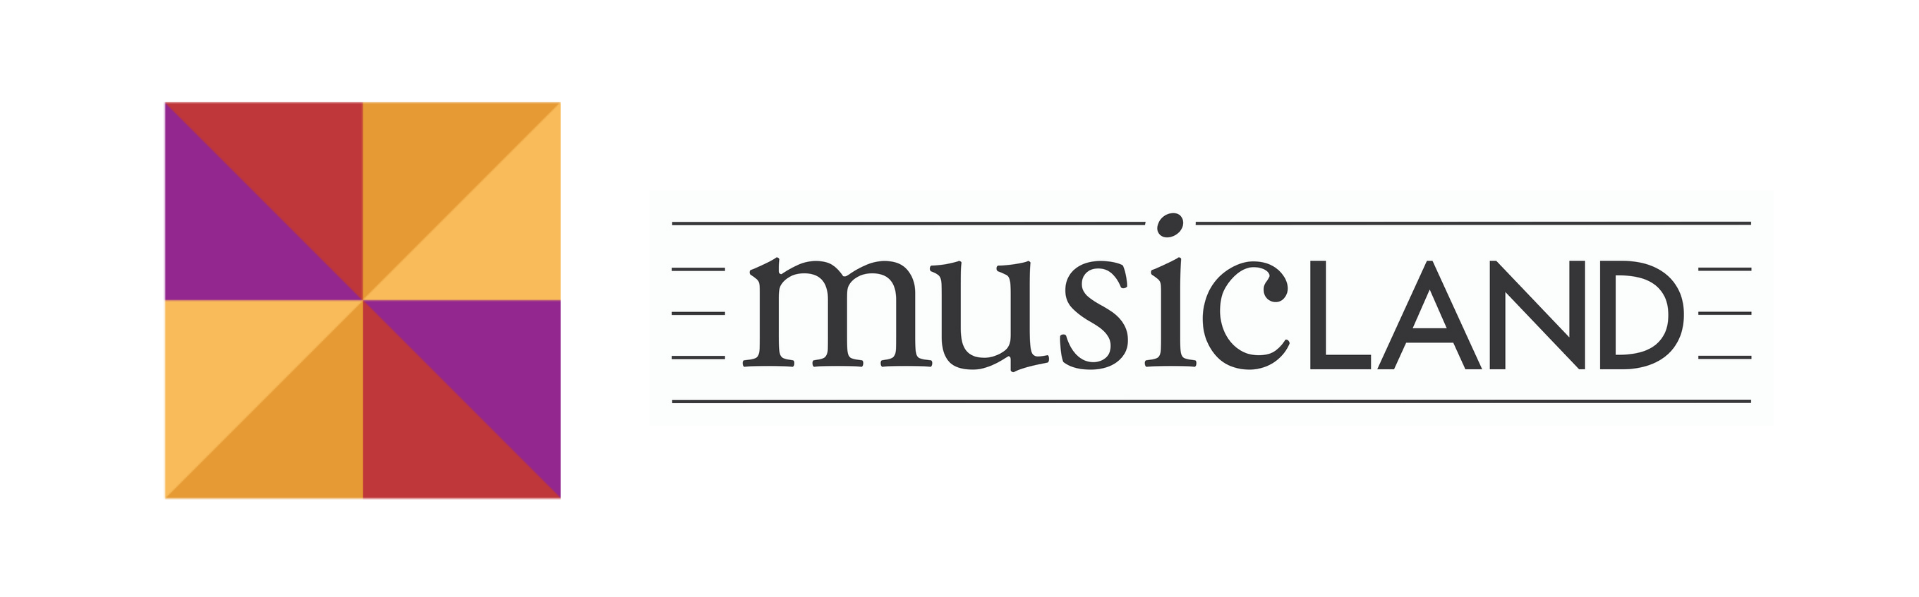 Musicland ViolinSchool – MusiclandPublications.com